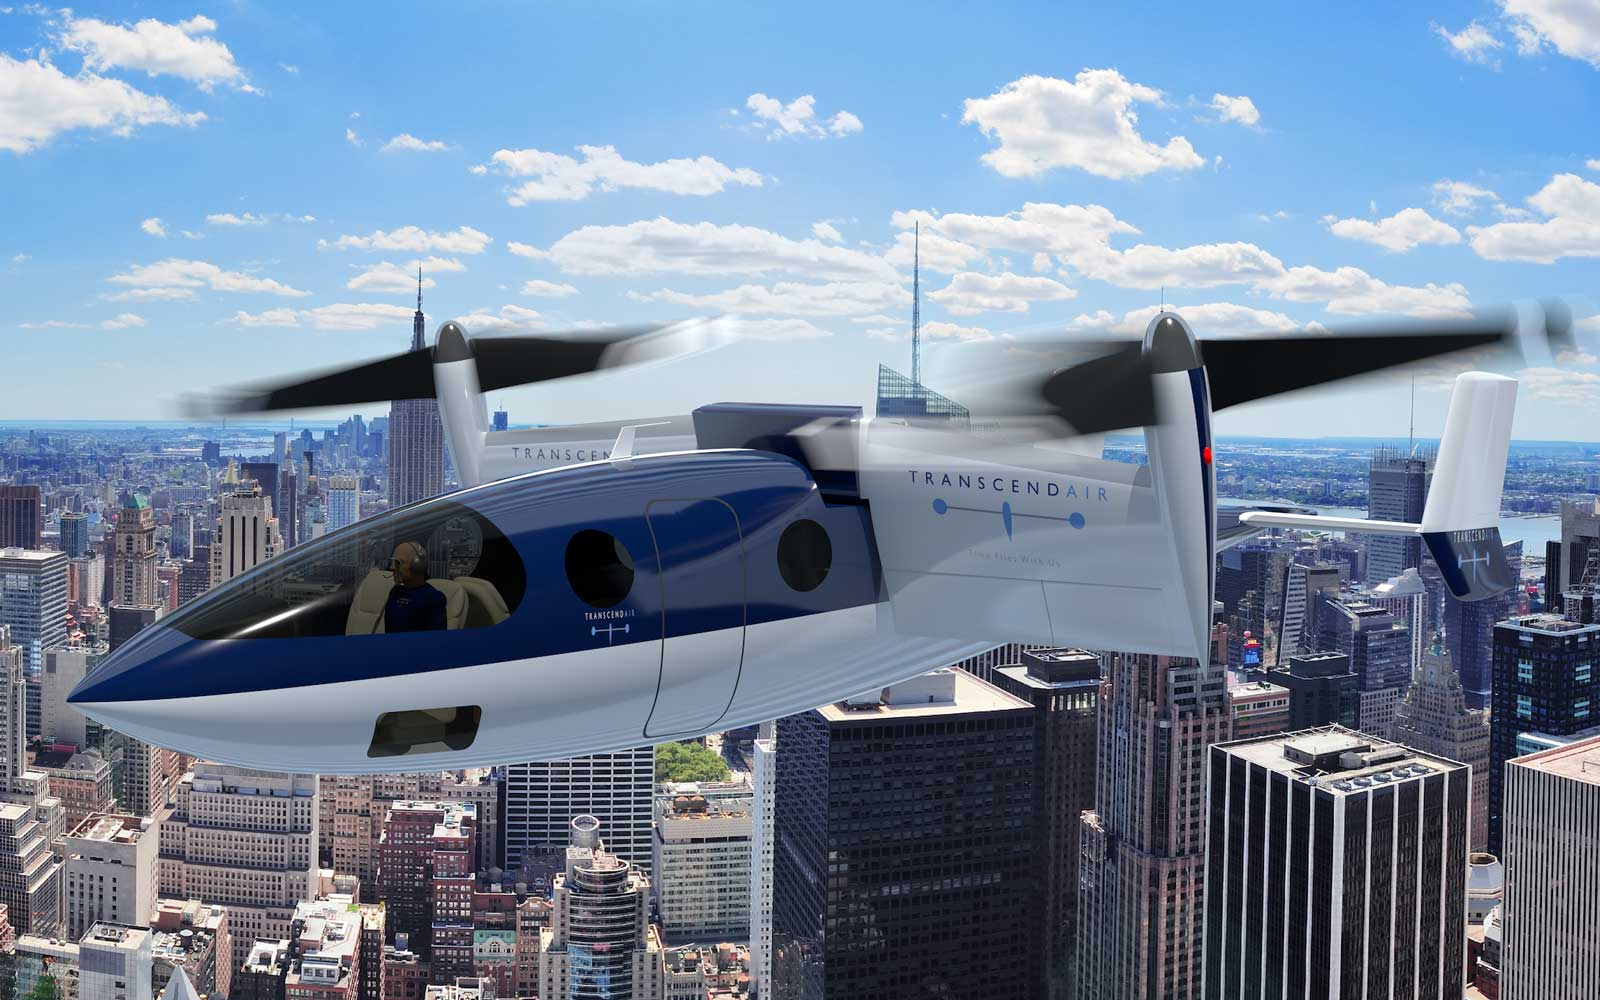 A concept image of Transcend Air's aircraft.